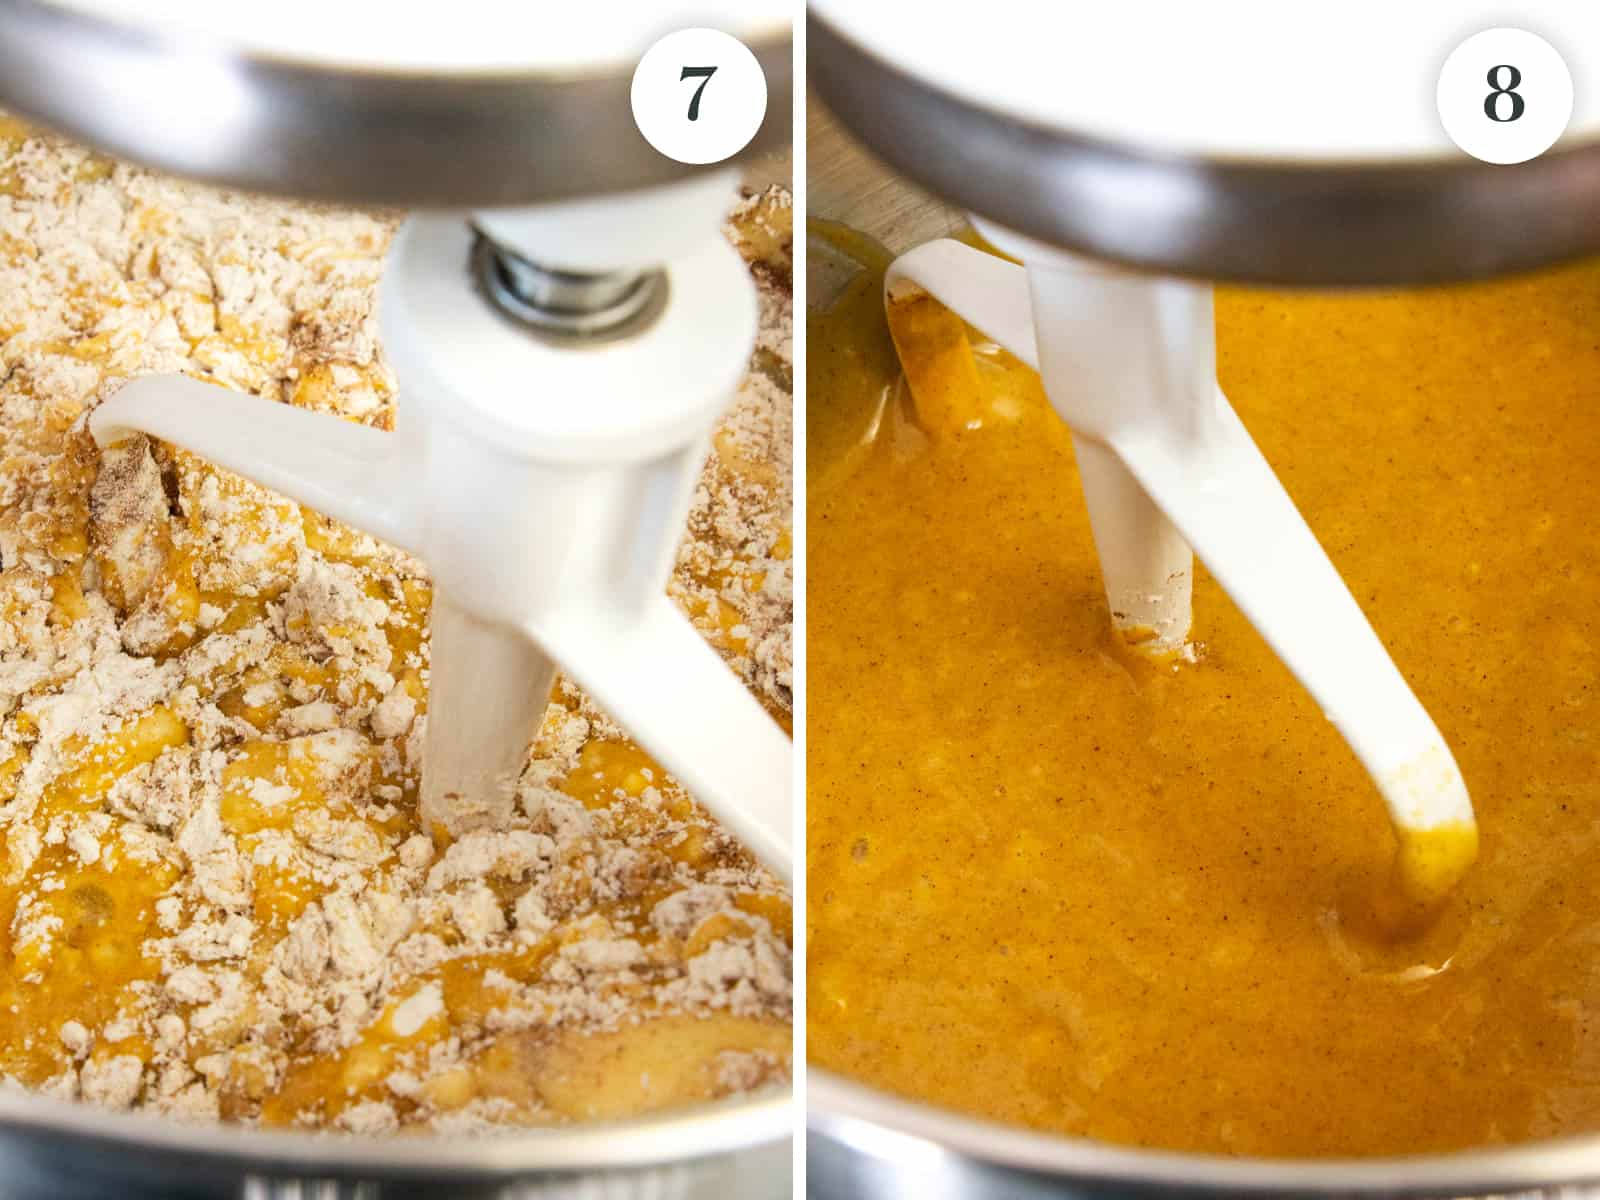 step by step photos showing the flour mixture mixing into the batter to achieve a thick consistency of batter